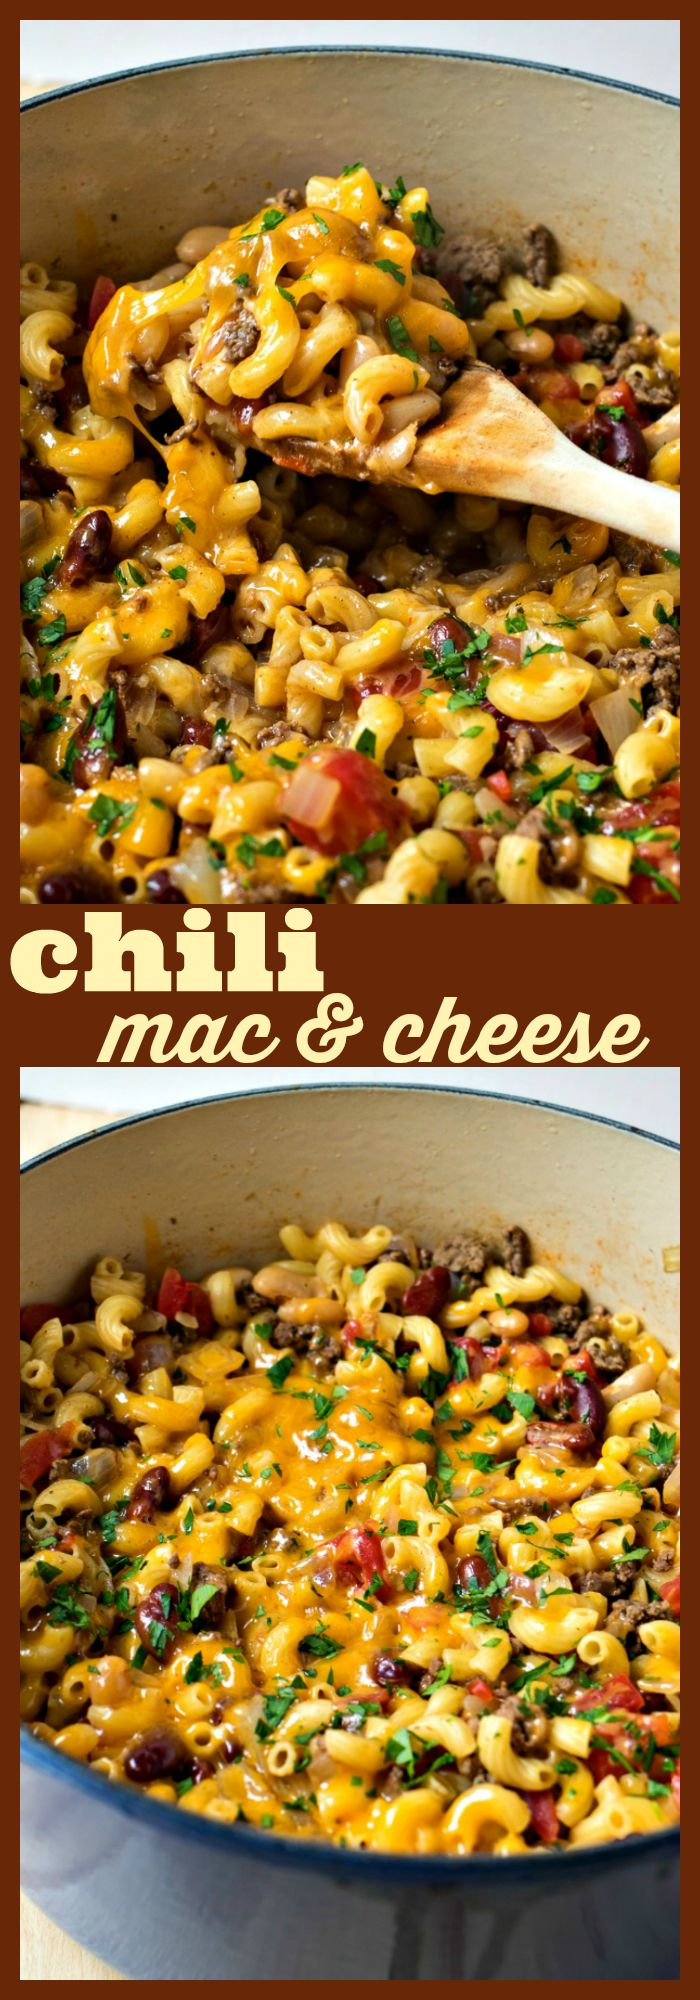 Chili Mac & Cheese – Hearty bean chili is cooked with macaroni and covered with cheese to make for one hearty dish perfect for those cold nights! #soup #chili #macandcheese #cheese #comfortfood